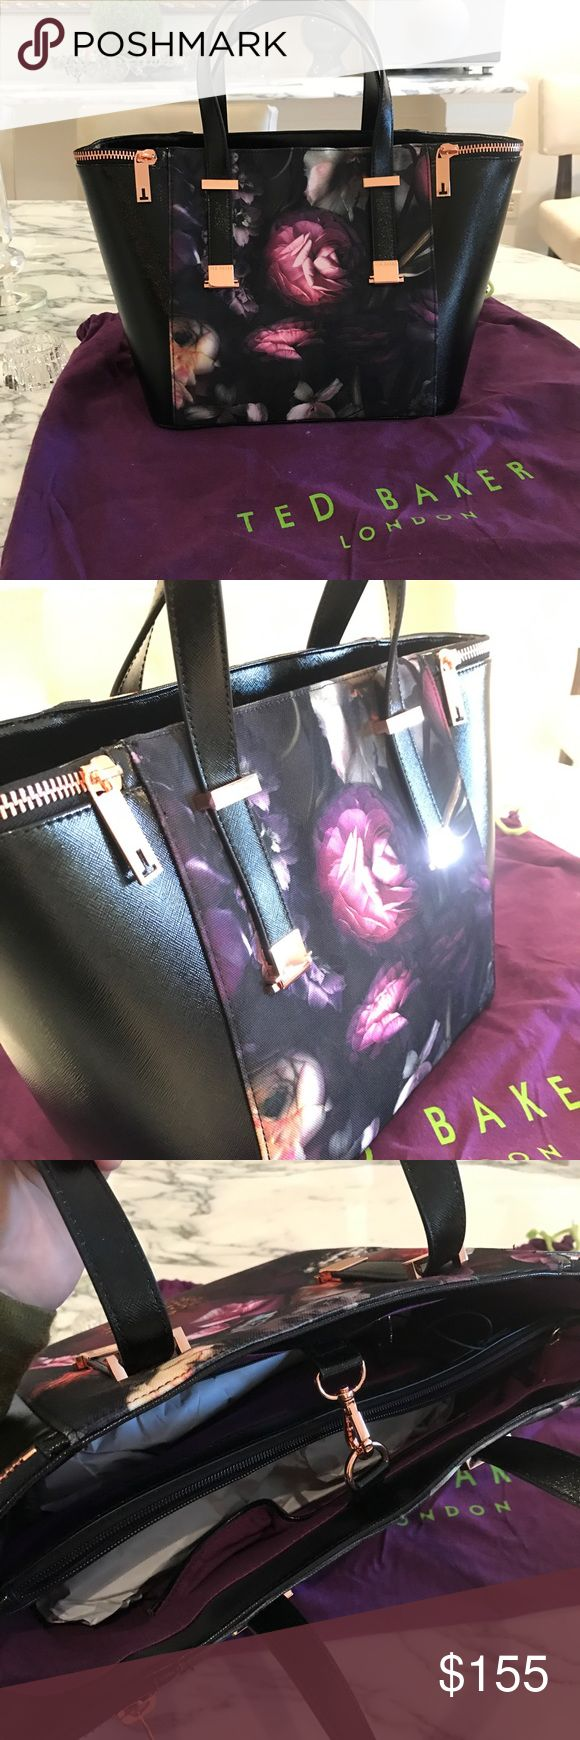 NWT Ted Baker Black/Floral Purse Brand new with tags Ted Baker purse! Never been worn, comes with original stuffing and dust bag. Purchased for $199 (on sale) + tax. Selling for $155 Ted Baker Bags Totes